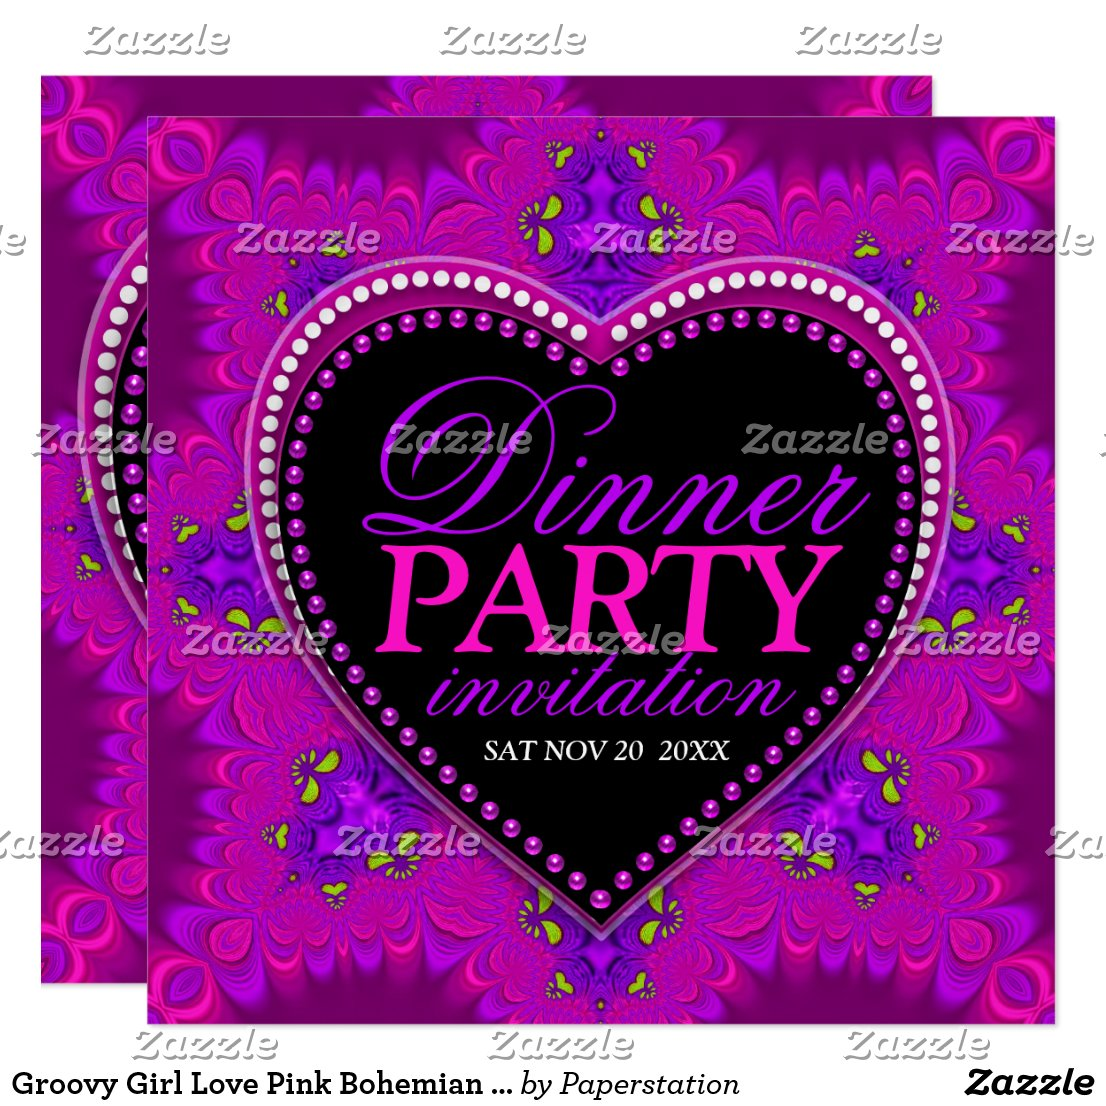 Groovy Girl Love Pink Bohemian Dinner Party Card by Paperstation